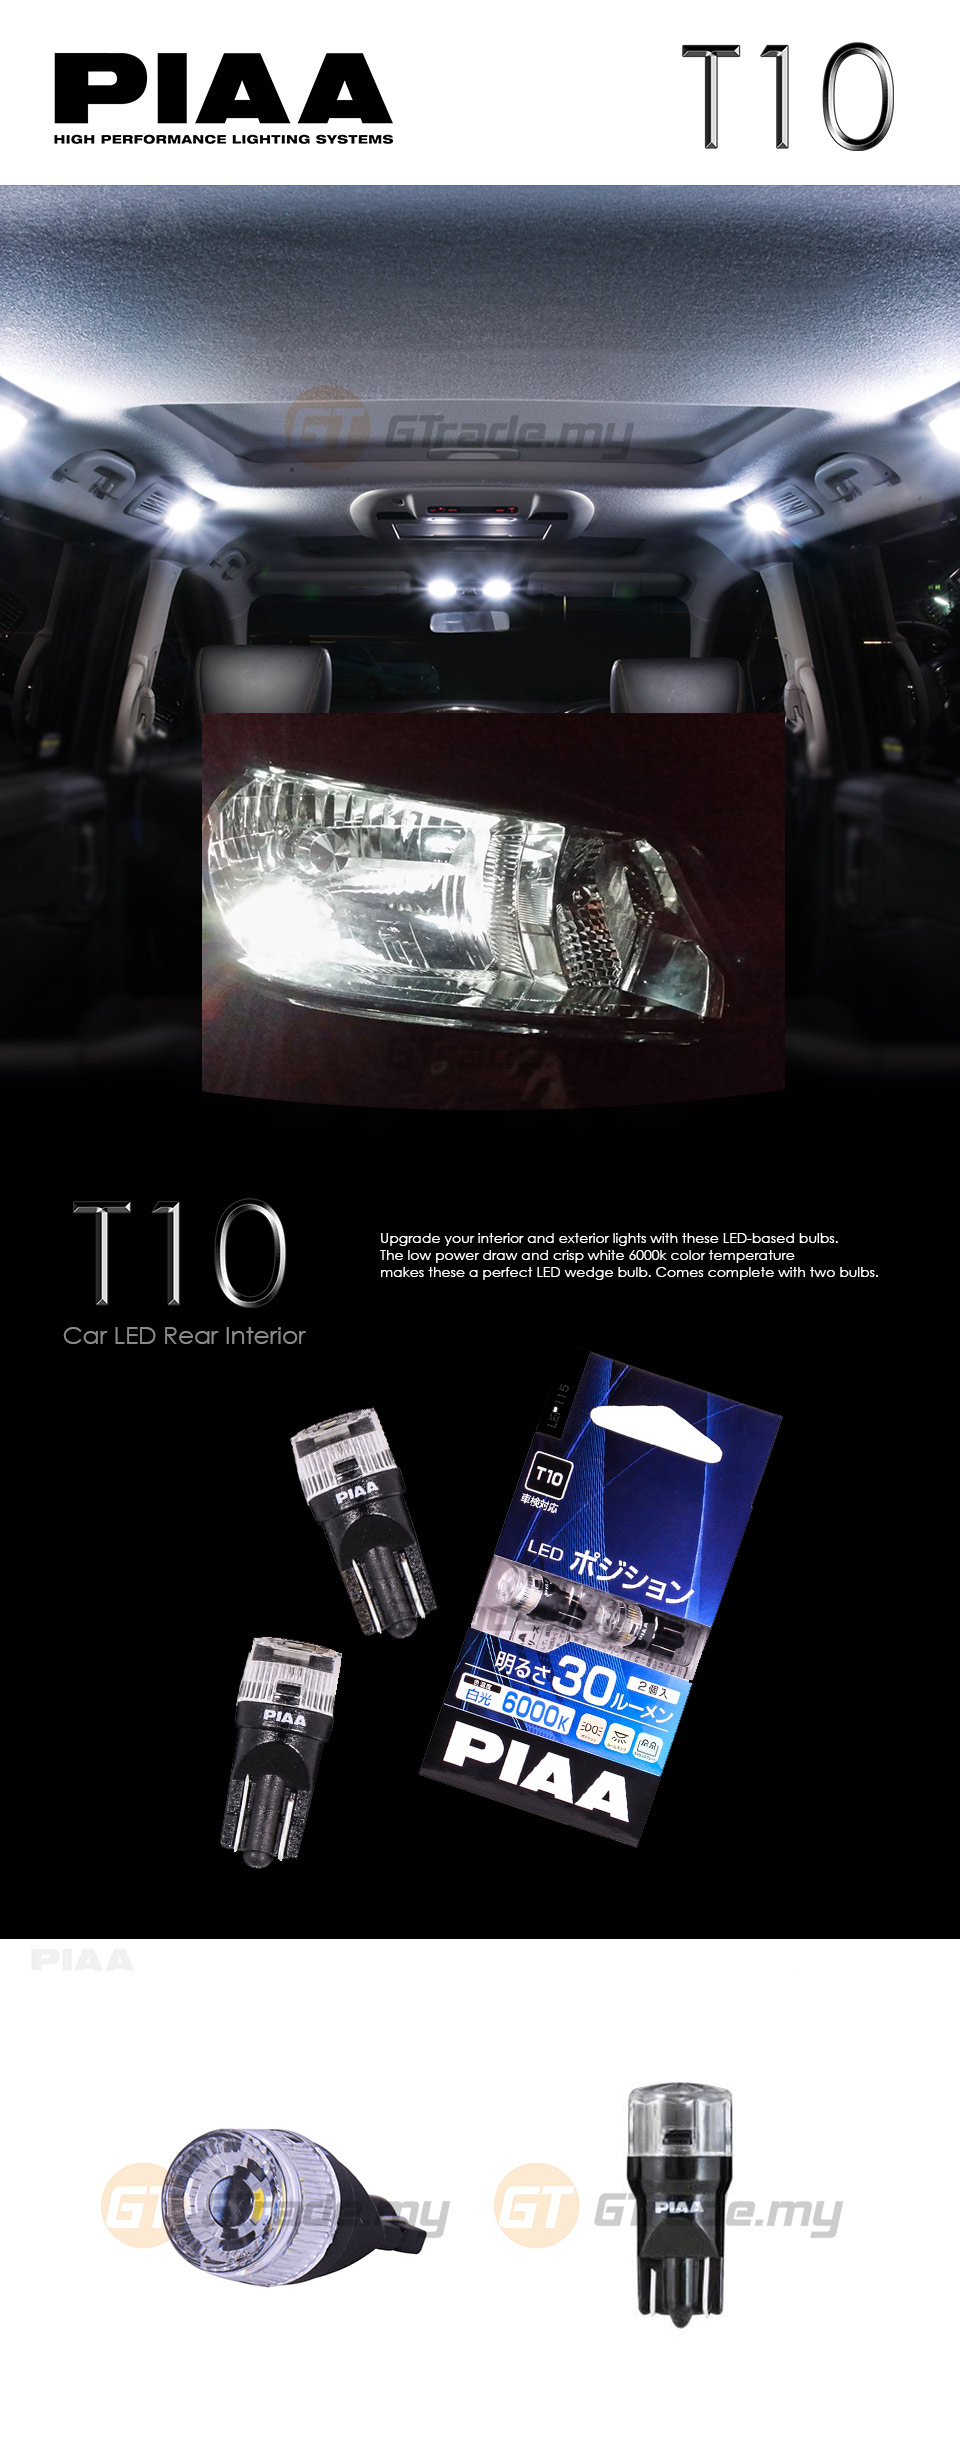 Piaa T10 Car Led Rear Interior Lig End 11 17 2019 1156 Pm Power To The Dome Light And Comes On Bulb